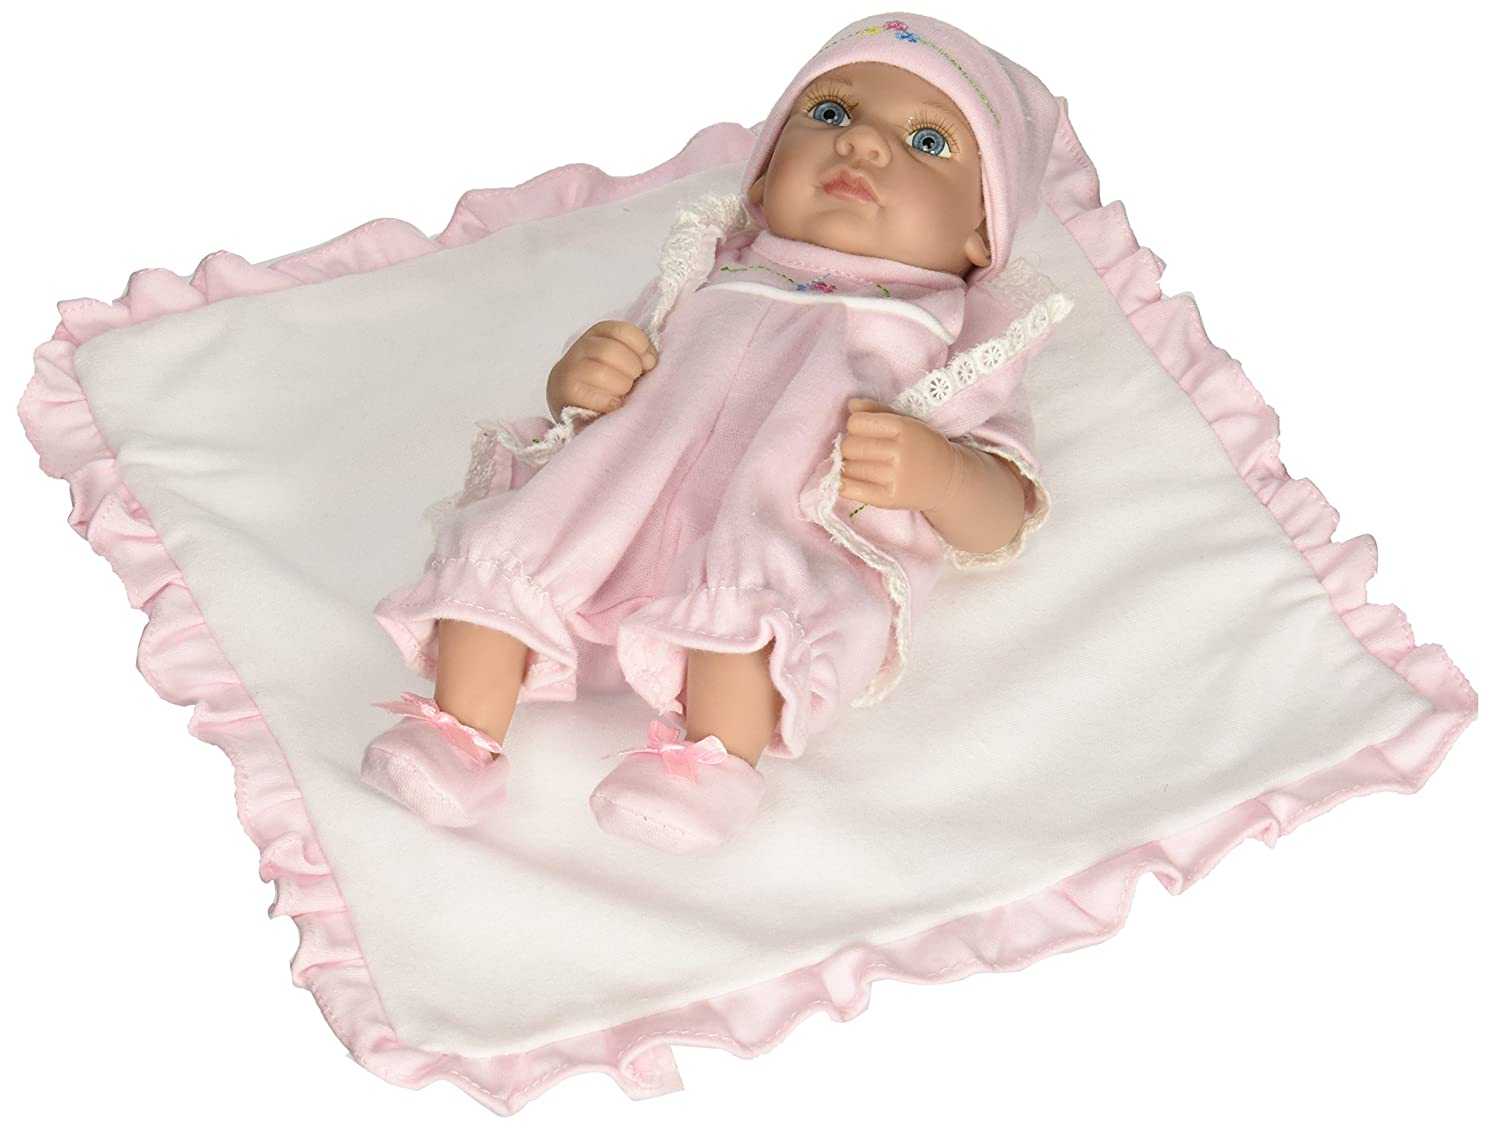 Barato Molly P. Originals Jointed Jessica Doll, 12